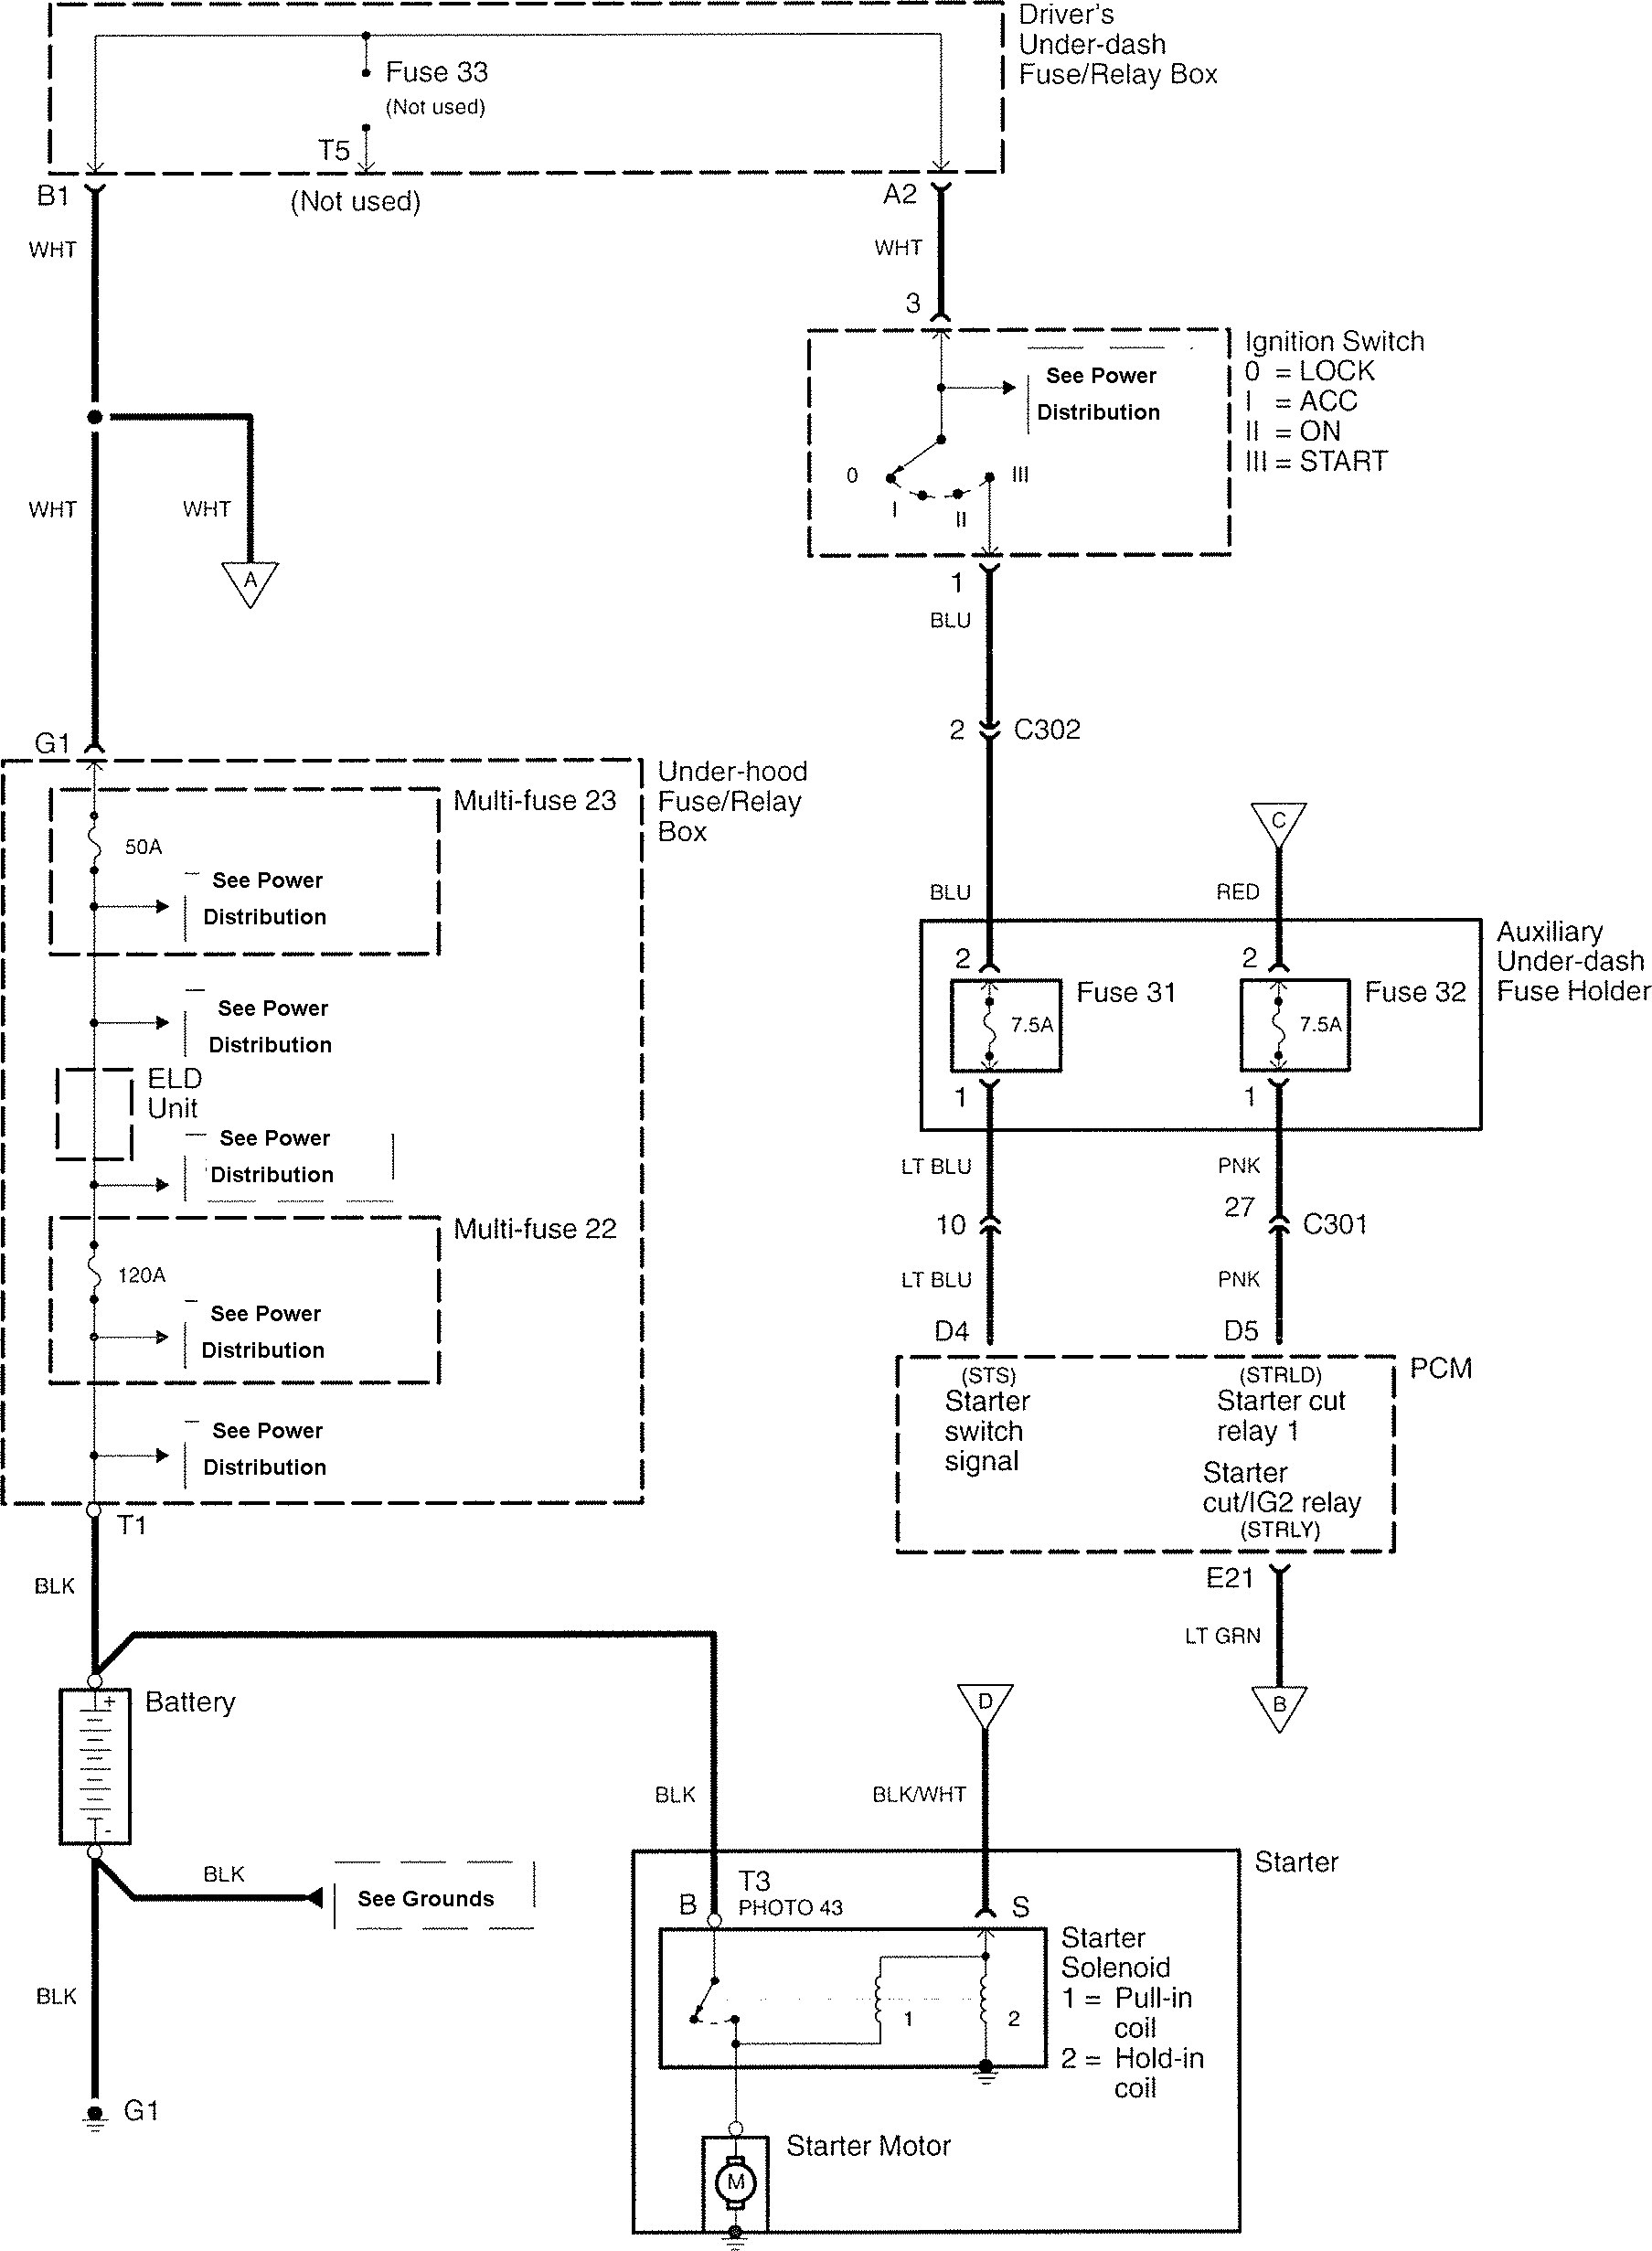 DIAGRAM] 2008 Acura Rl Wiring Diagram FULL Version HD Quality Wiring Diagram  - ORBITALDIAGRAMS.SAINTMIHIEL-TOURISME.FRSaintmihiel-tourisme.fr